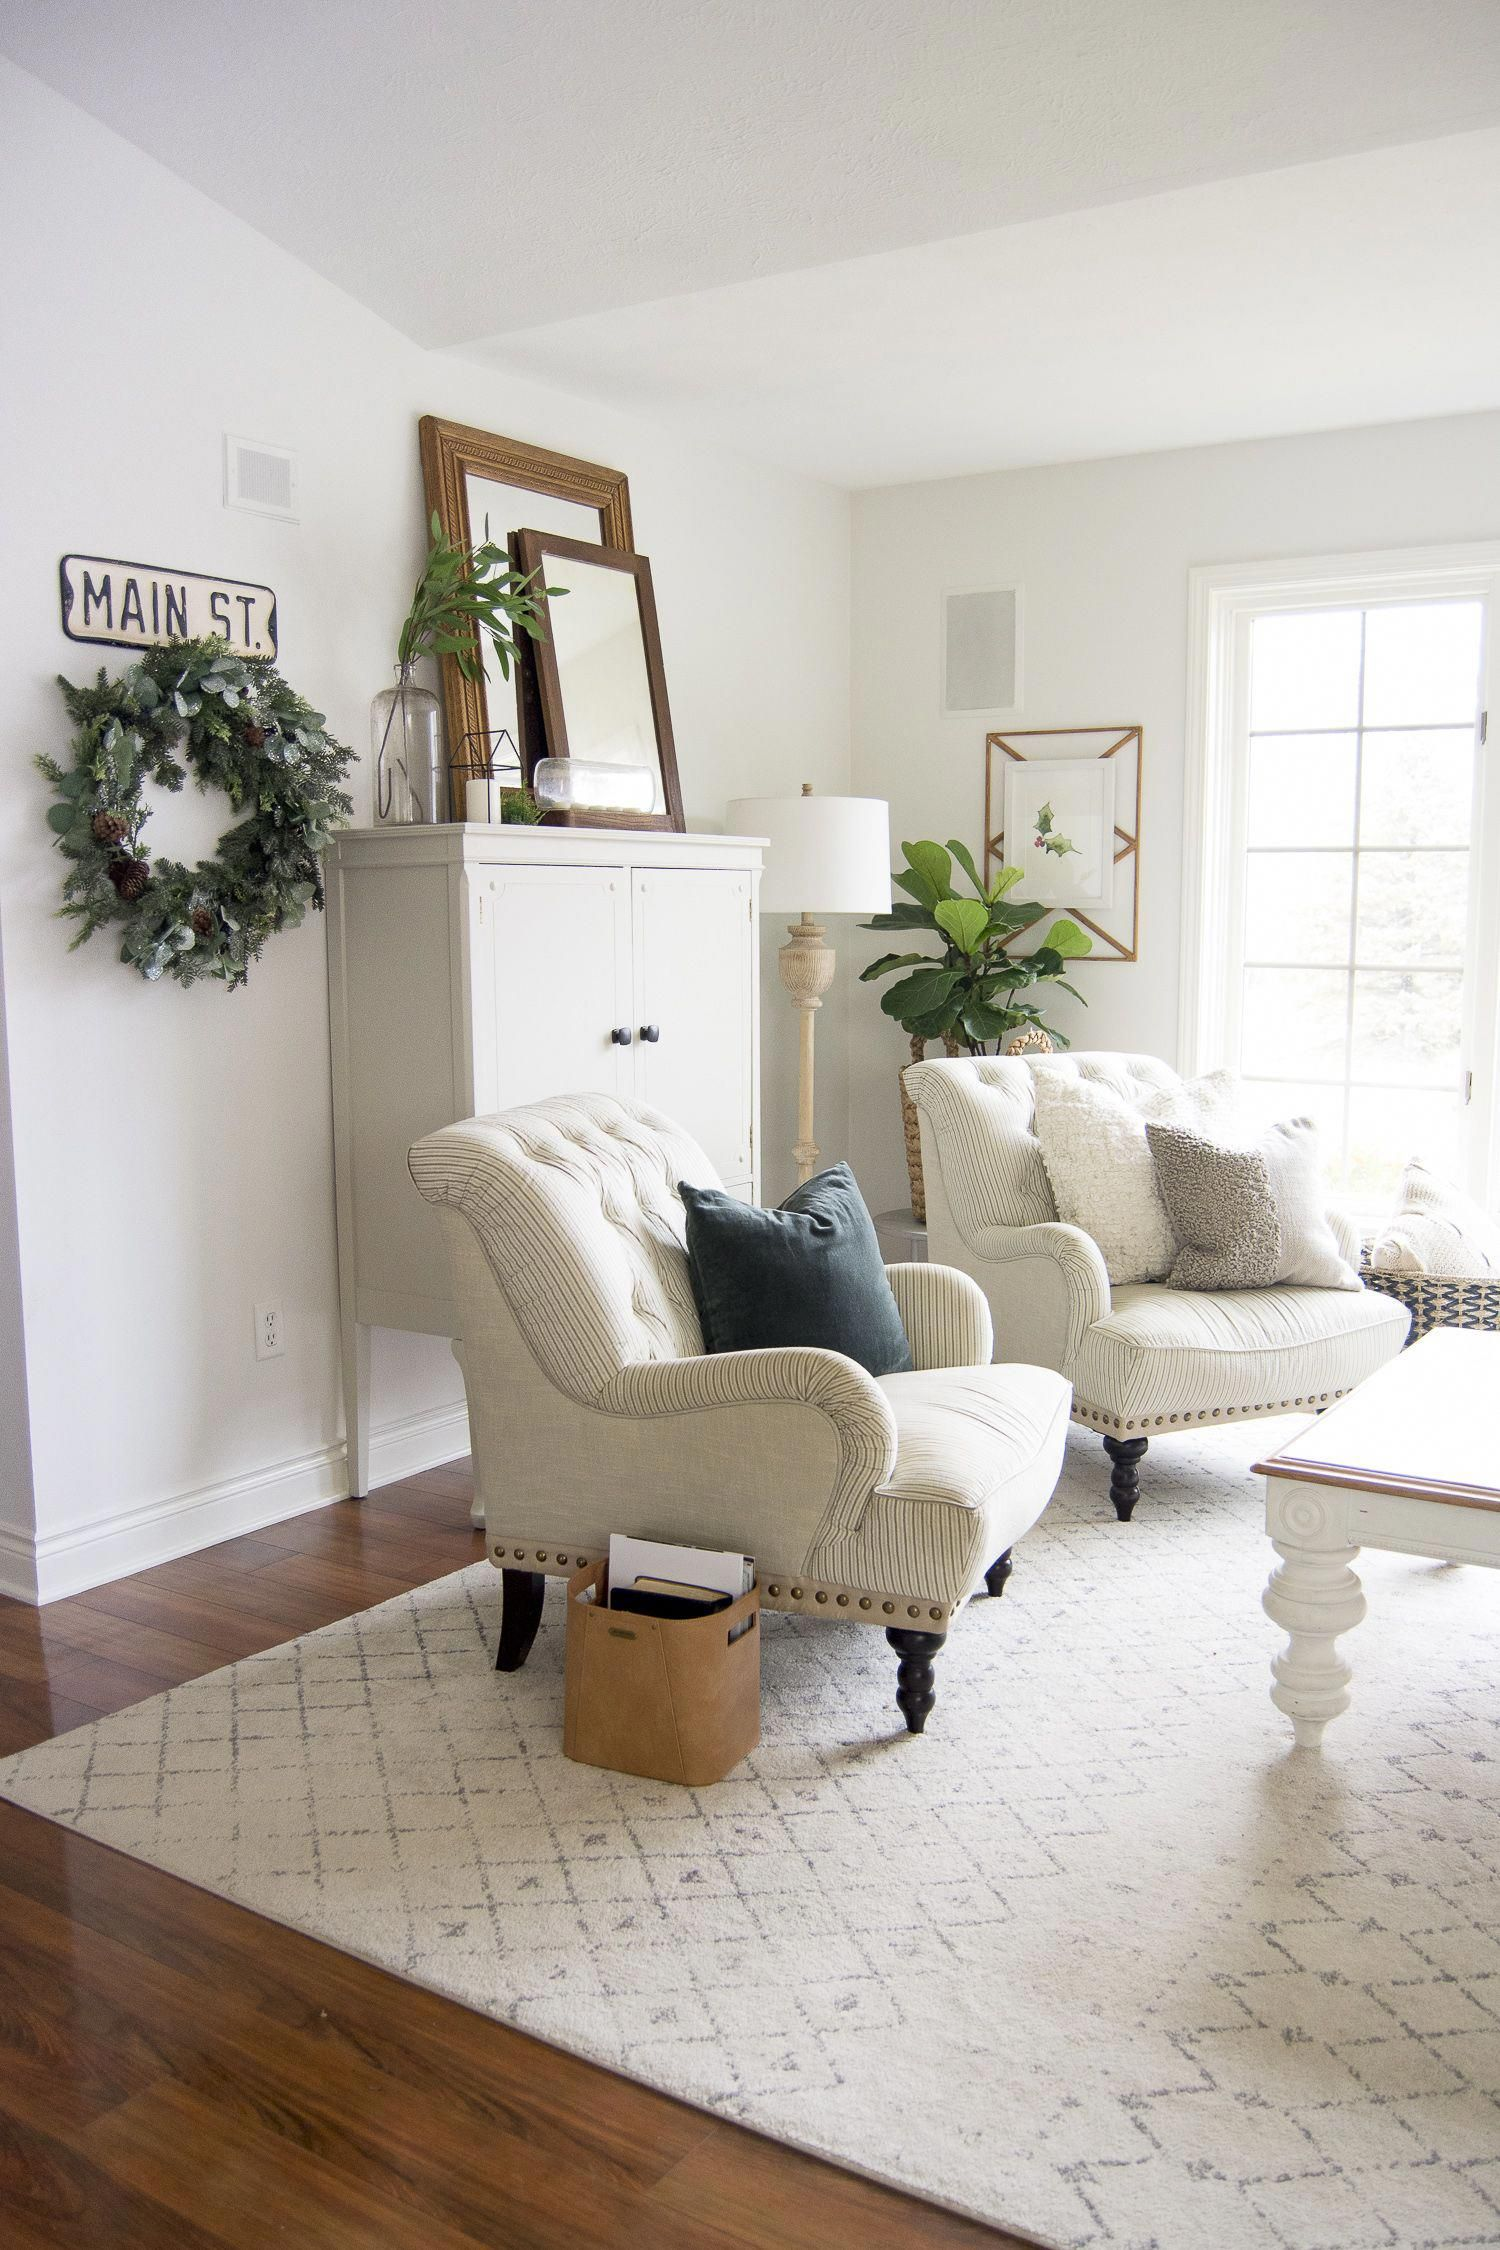 The hygge movement of intentional coziness is in full swing! On the blog I'm sharing cozy living room ideas that you can incorporate on a budget!  #fromhousetohaven #cozylivingroom #livingroomideas #hyggehome #hyggedecor